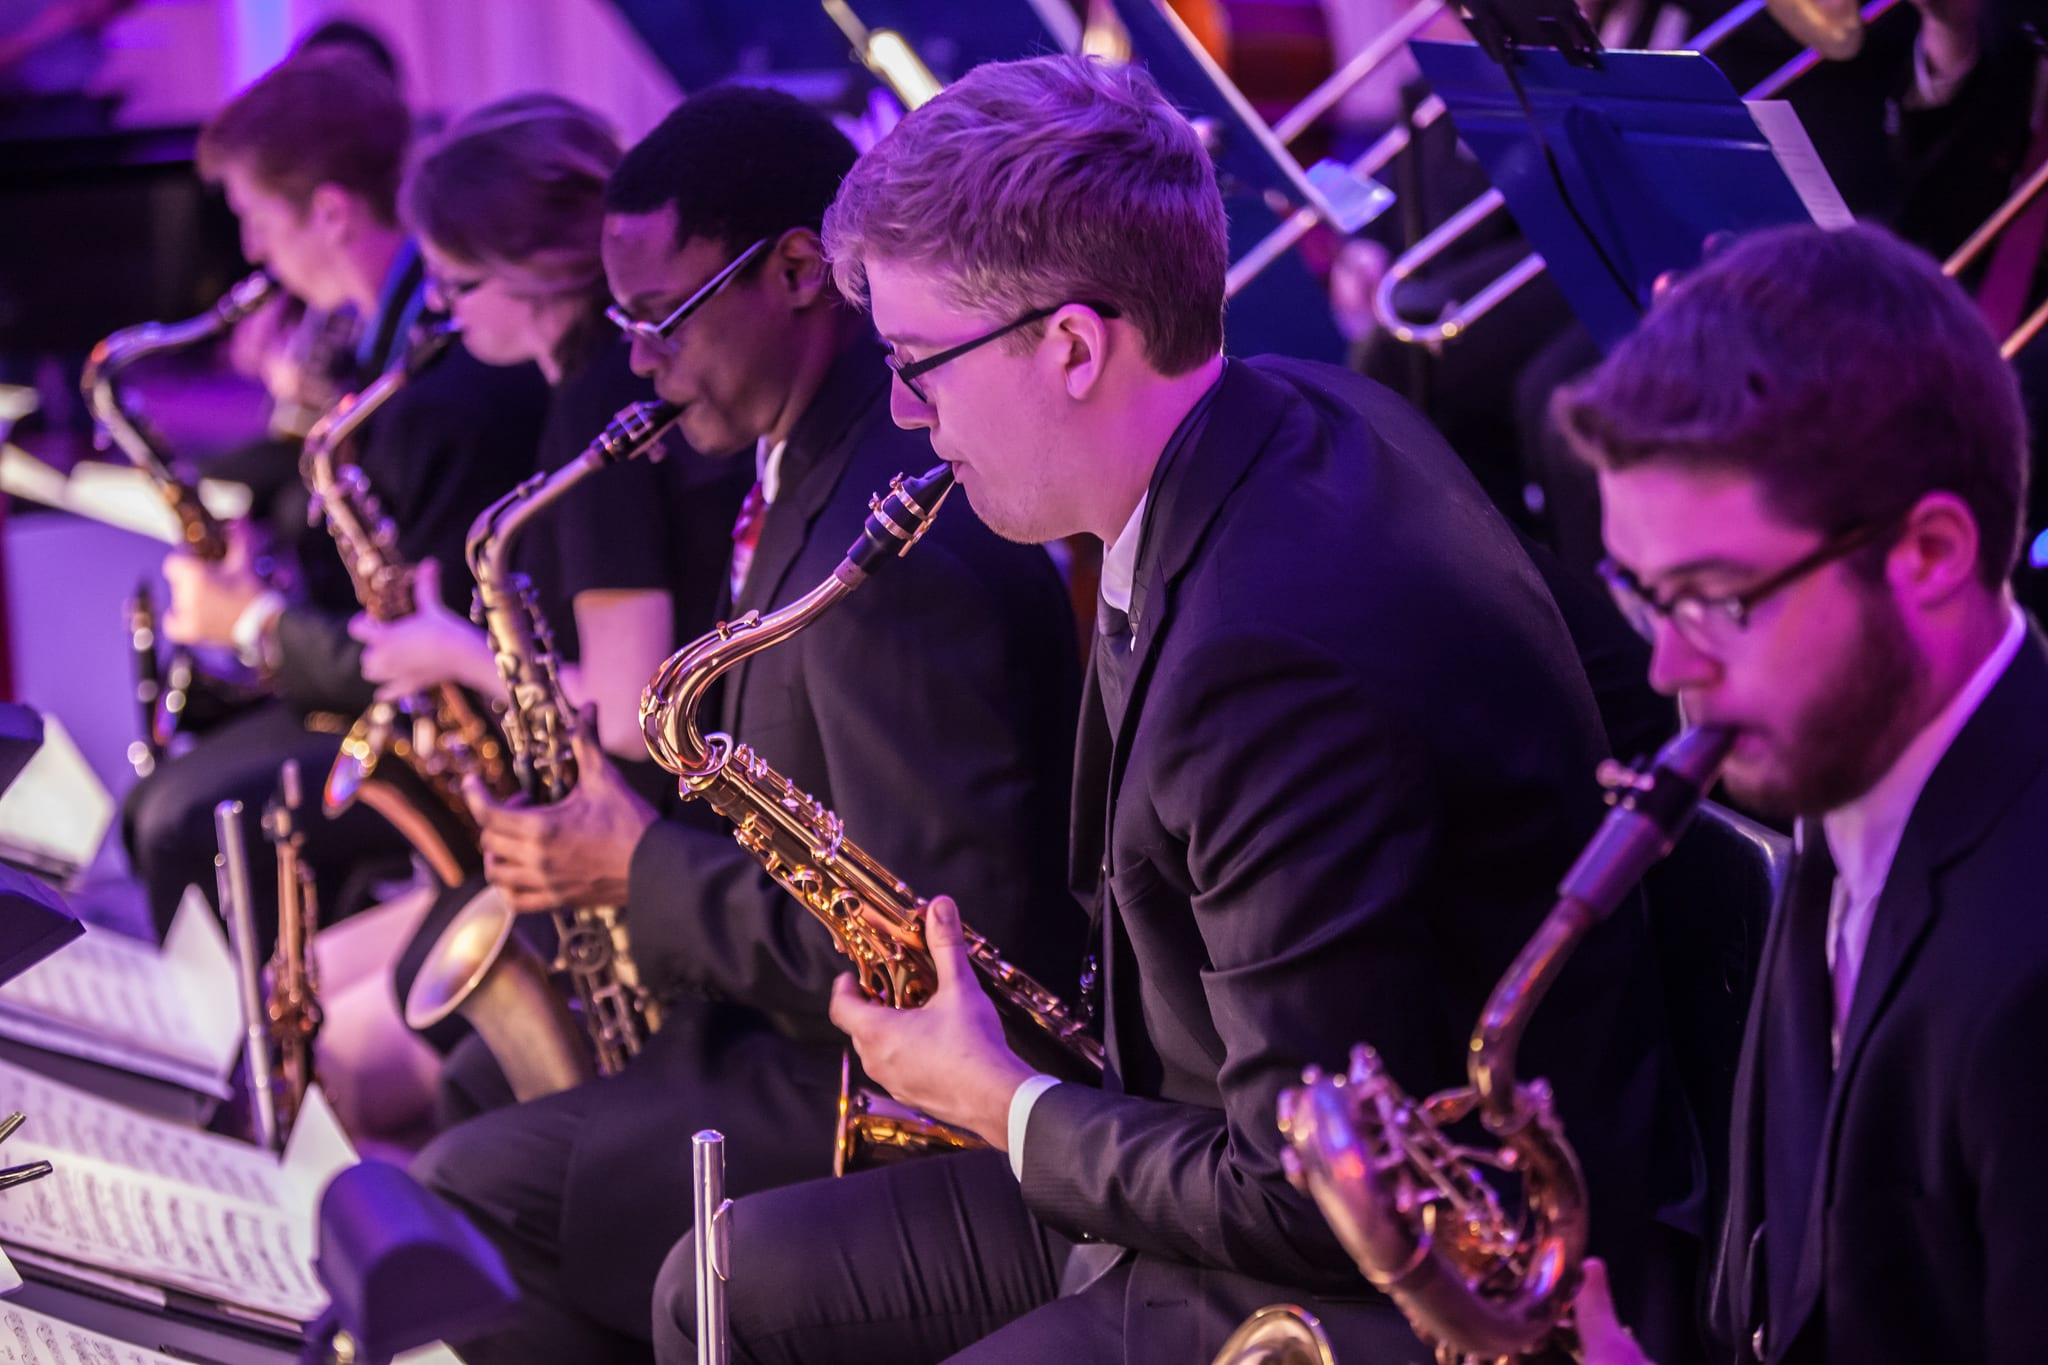 The SMU Meadows Jazz Orchestra presented its second annual swing dance concert onOctober 29.